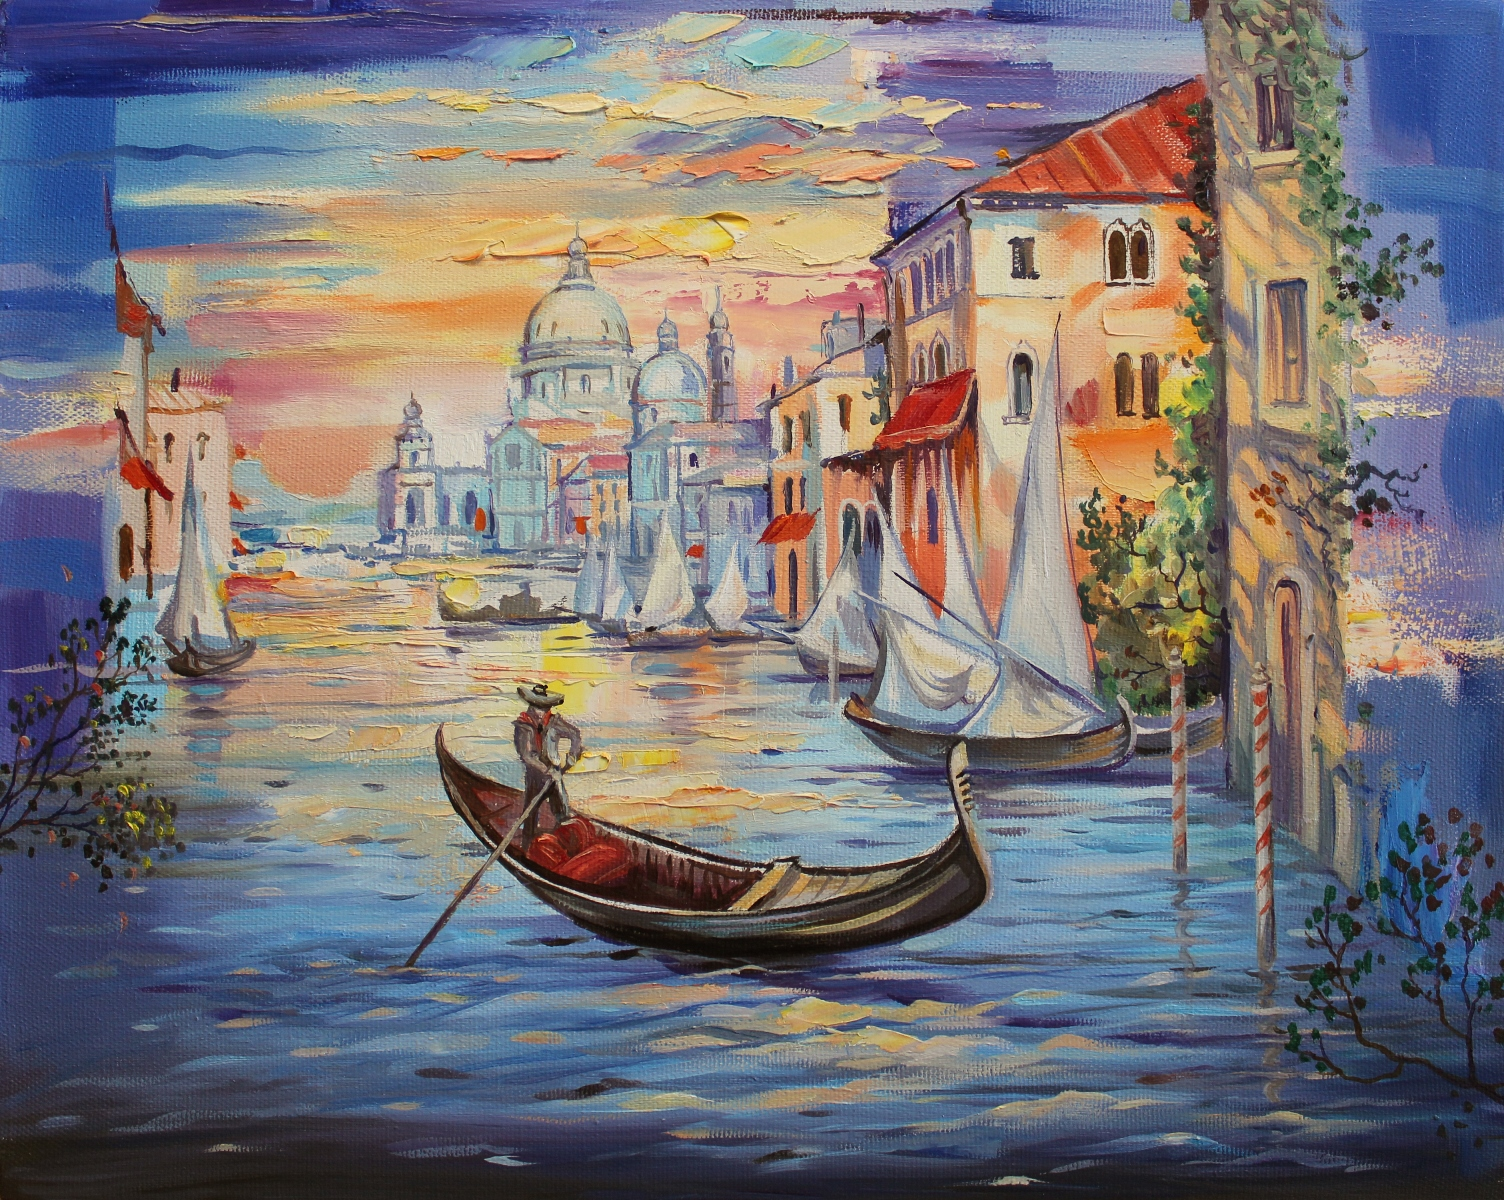 Morning in Venice - Giclee print